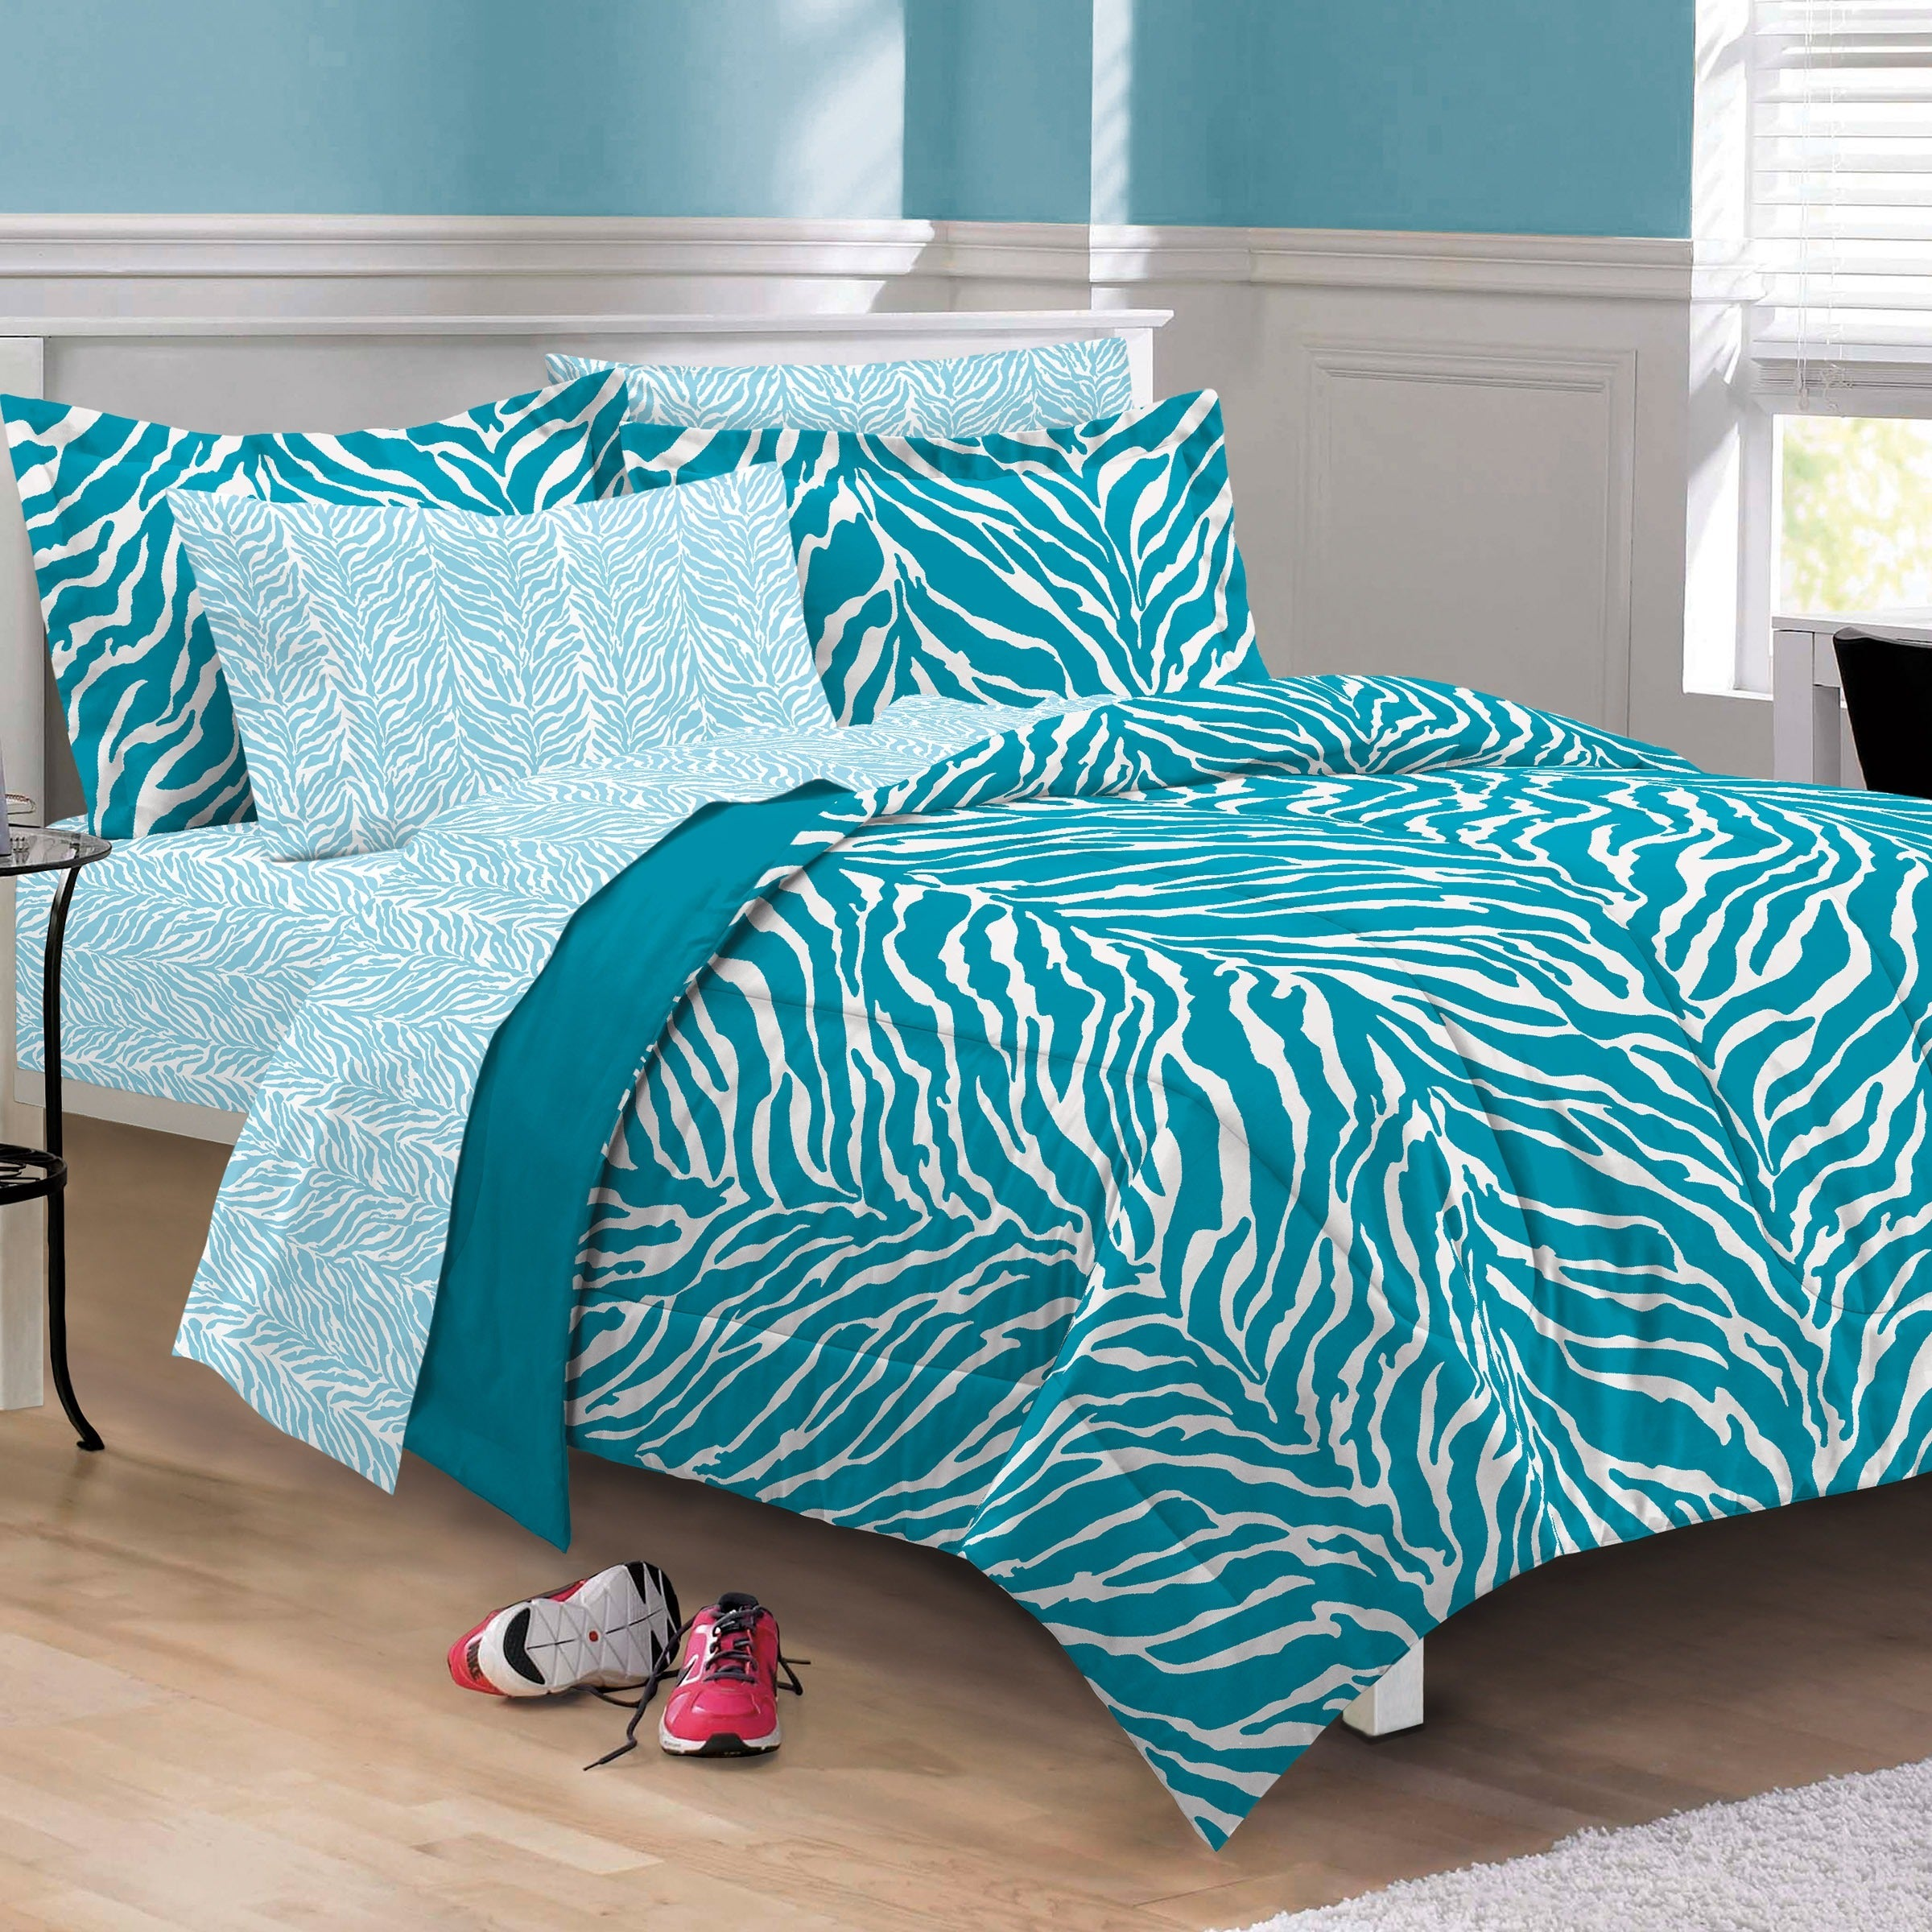 Zebra Microfiber 6-piece Bed in a Bag with Sheet Set (Aqu...